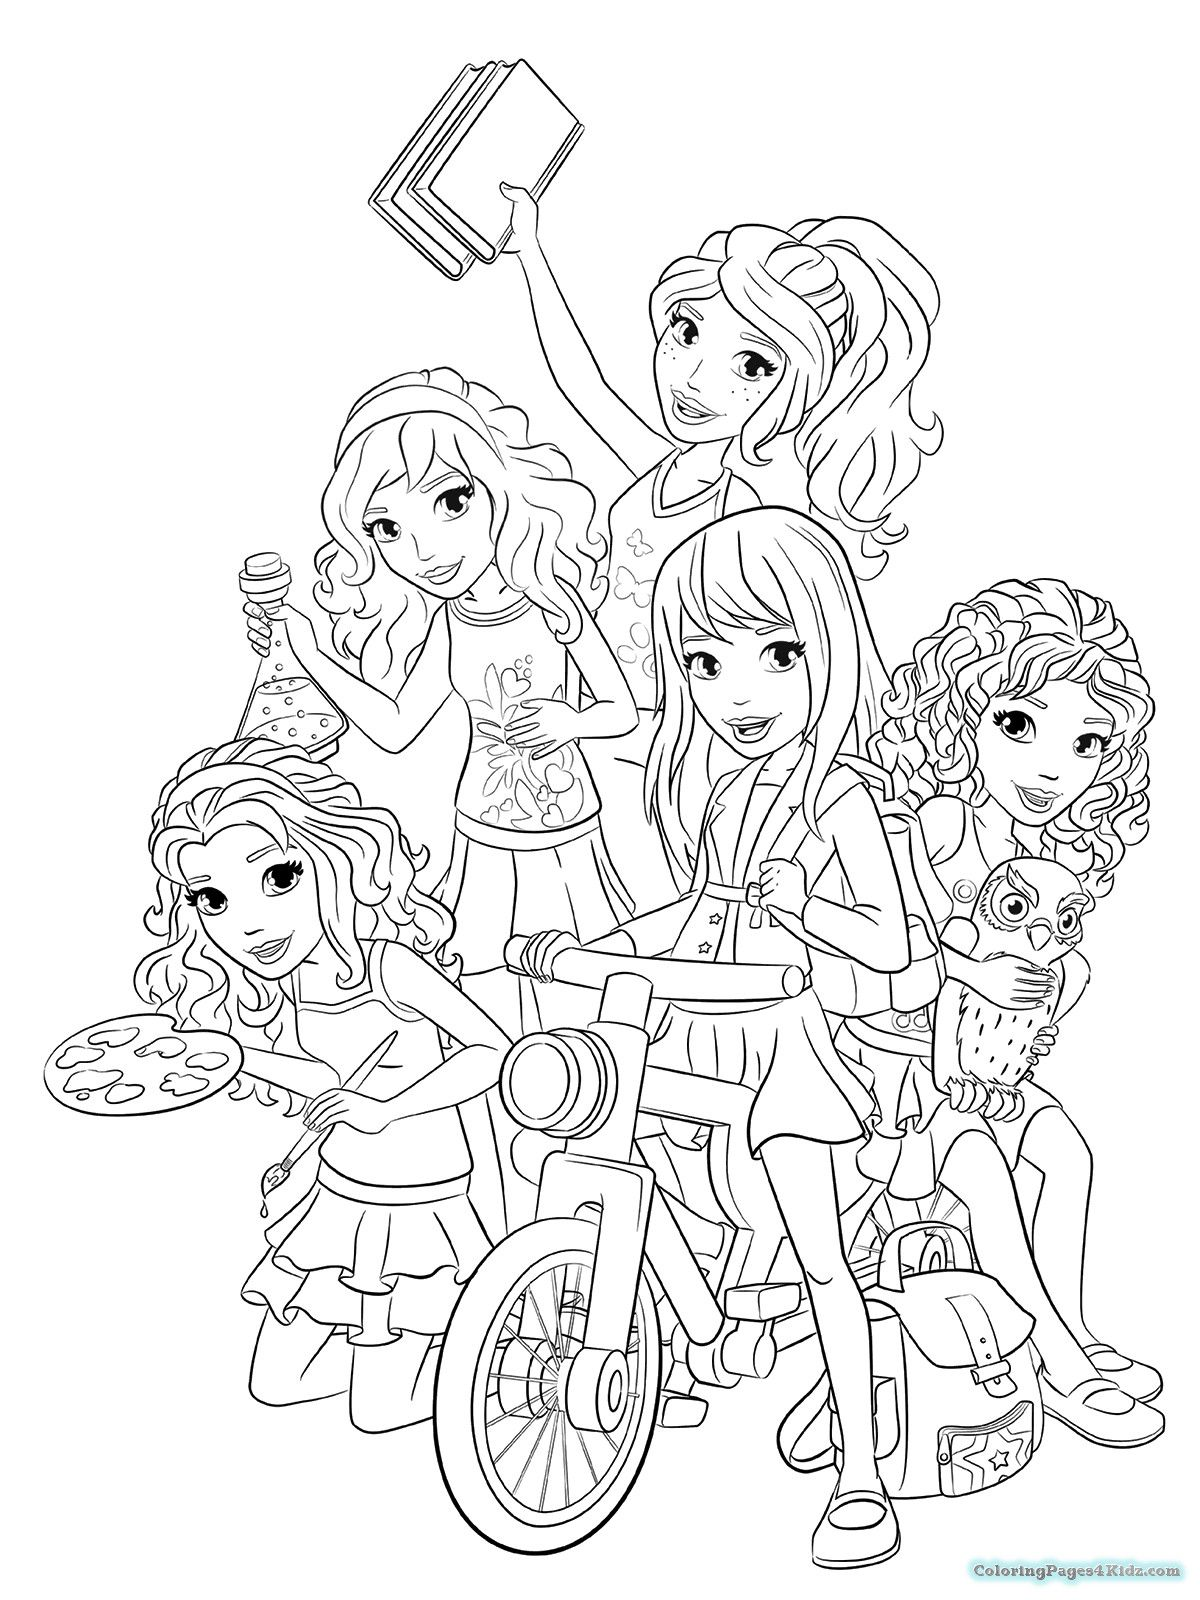 3 Lego Elves Coloring Pages 65adc Lego Friends Coloring Page Lego Friends Coloring Pages Lego Coloring Pages Lego Coloring Lego Friends Birthday